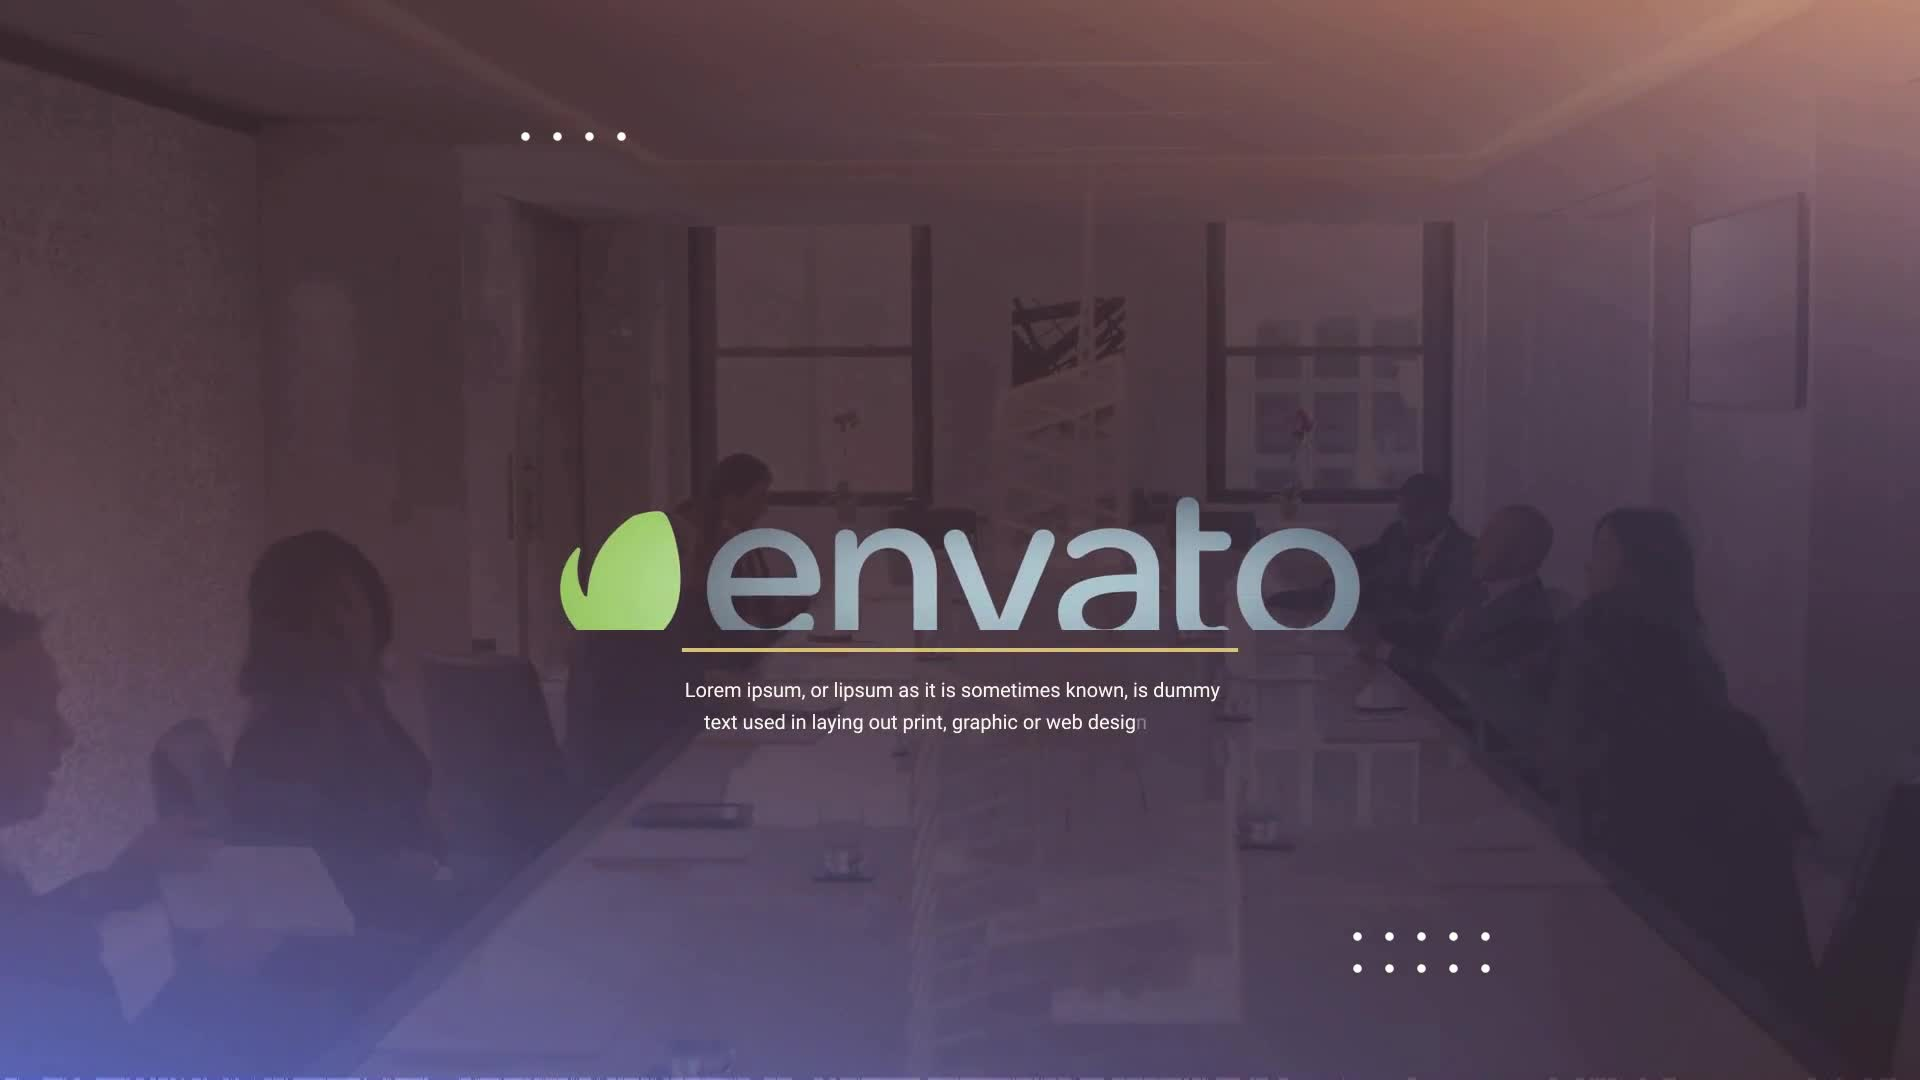 Architecture Business Promotion Slideshow Videohive 24827639 After Effects Image 1